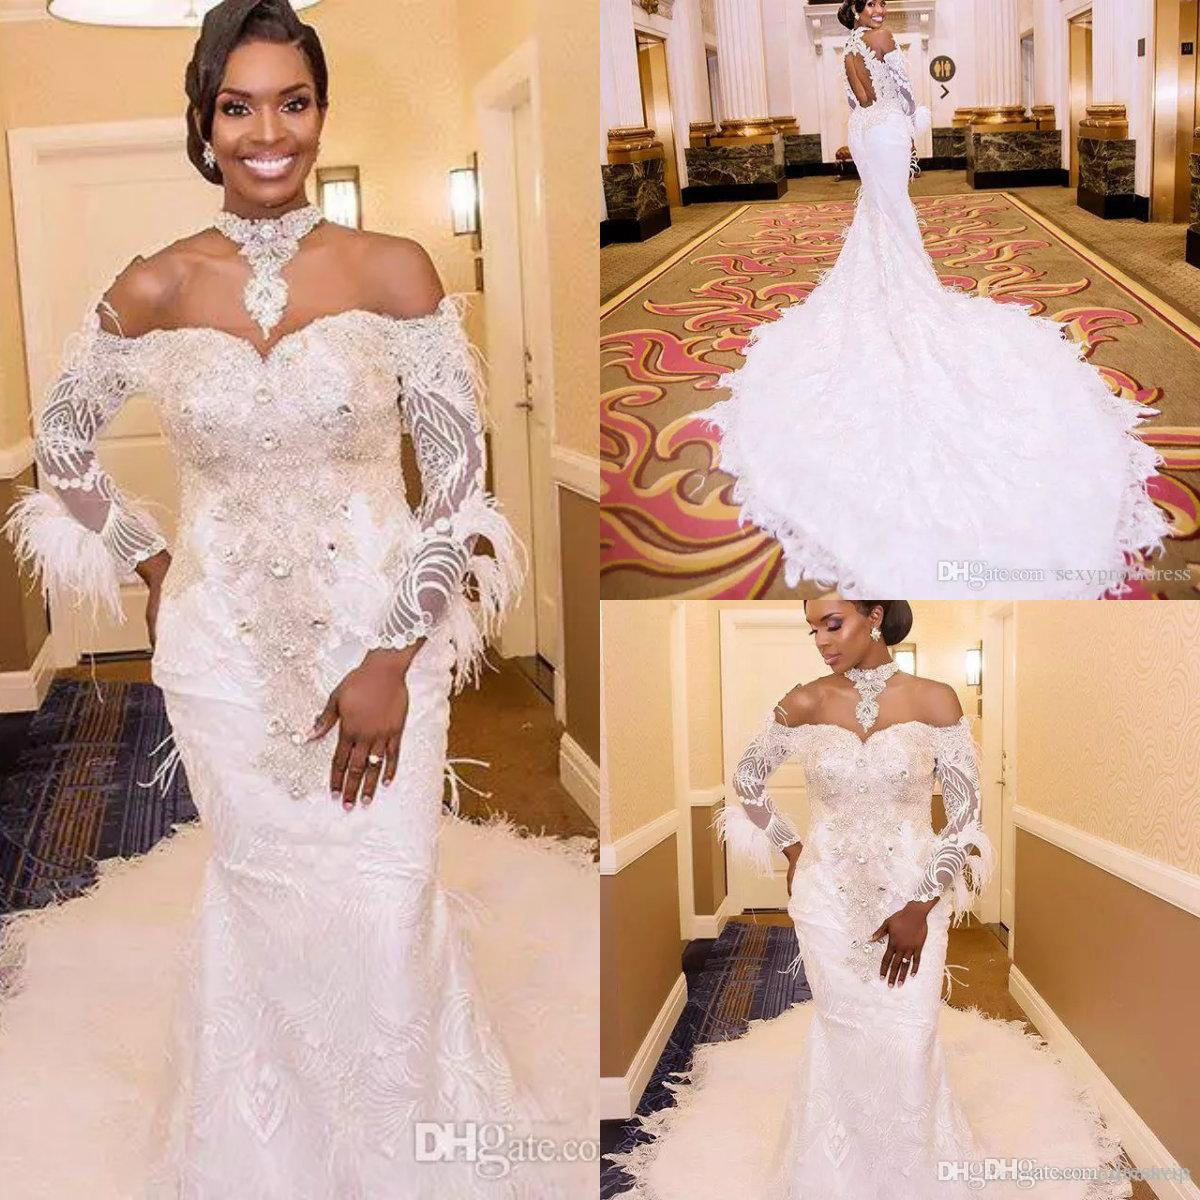 Luxury Mermaid Wedding Dresses Off The Shoulder High Neck Lace Appliques Bling Crystal Plus Size Wedding Dress Long Sleeve Bridal Gowns Mermaid Wedding Dress Lace Mermaids Wedding Dress From Dressvip 354 46 Dhgate Com